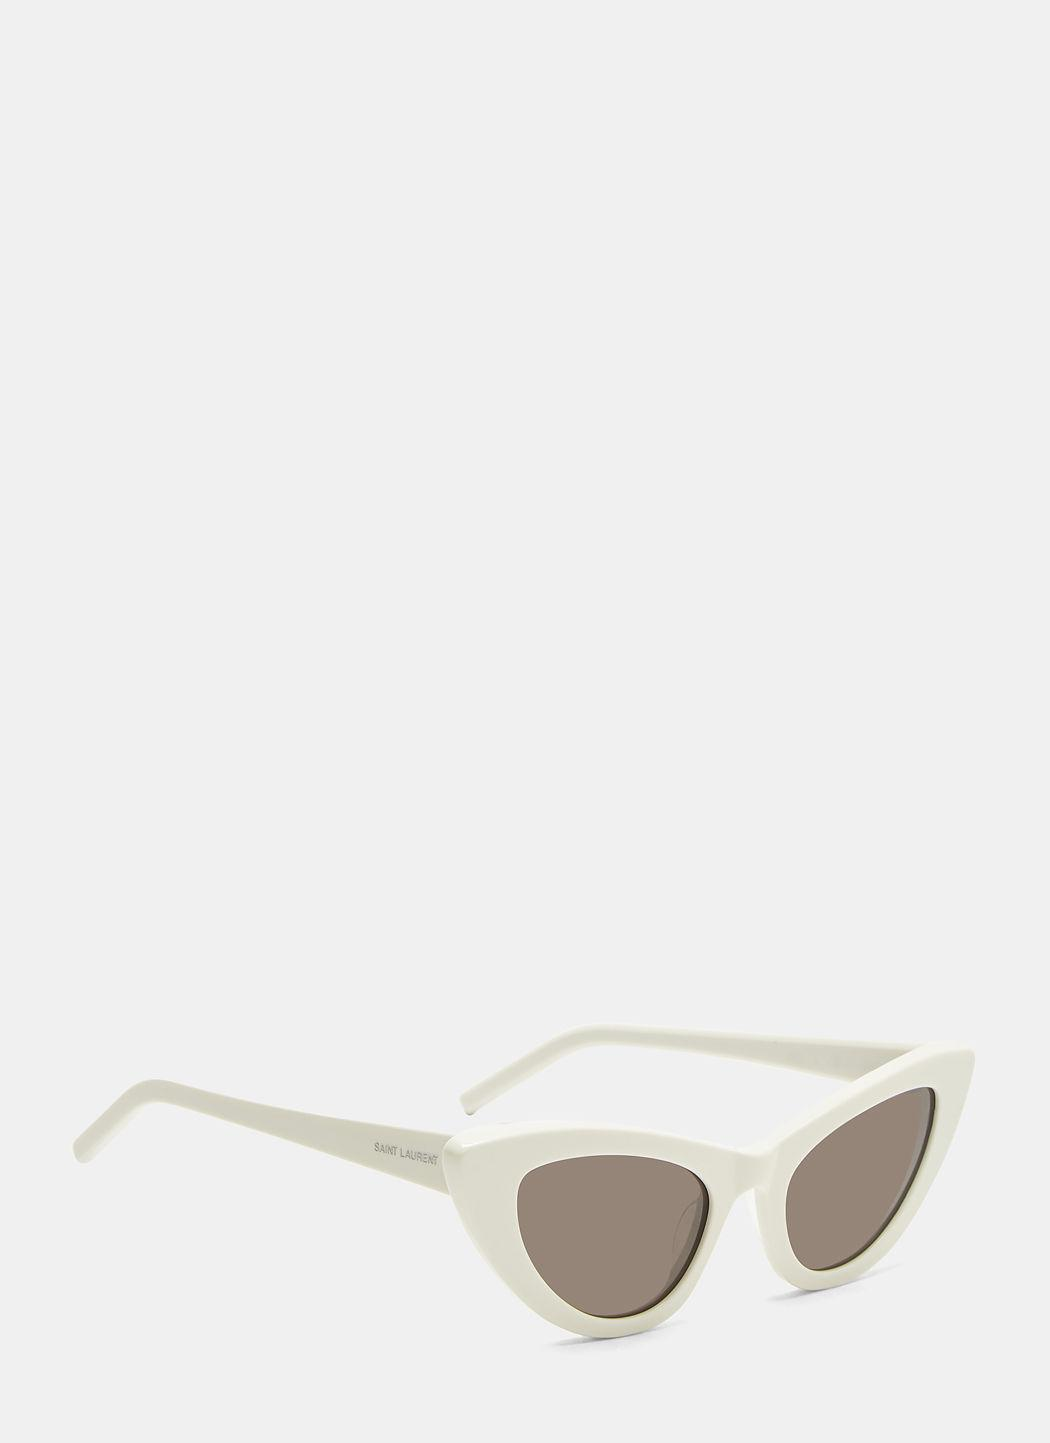 a89ebaaaf98a6 Saint Laurent New Wave 213 Lily Sunglasses In White In 005 Ivory ...